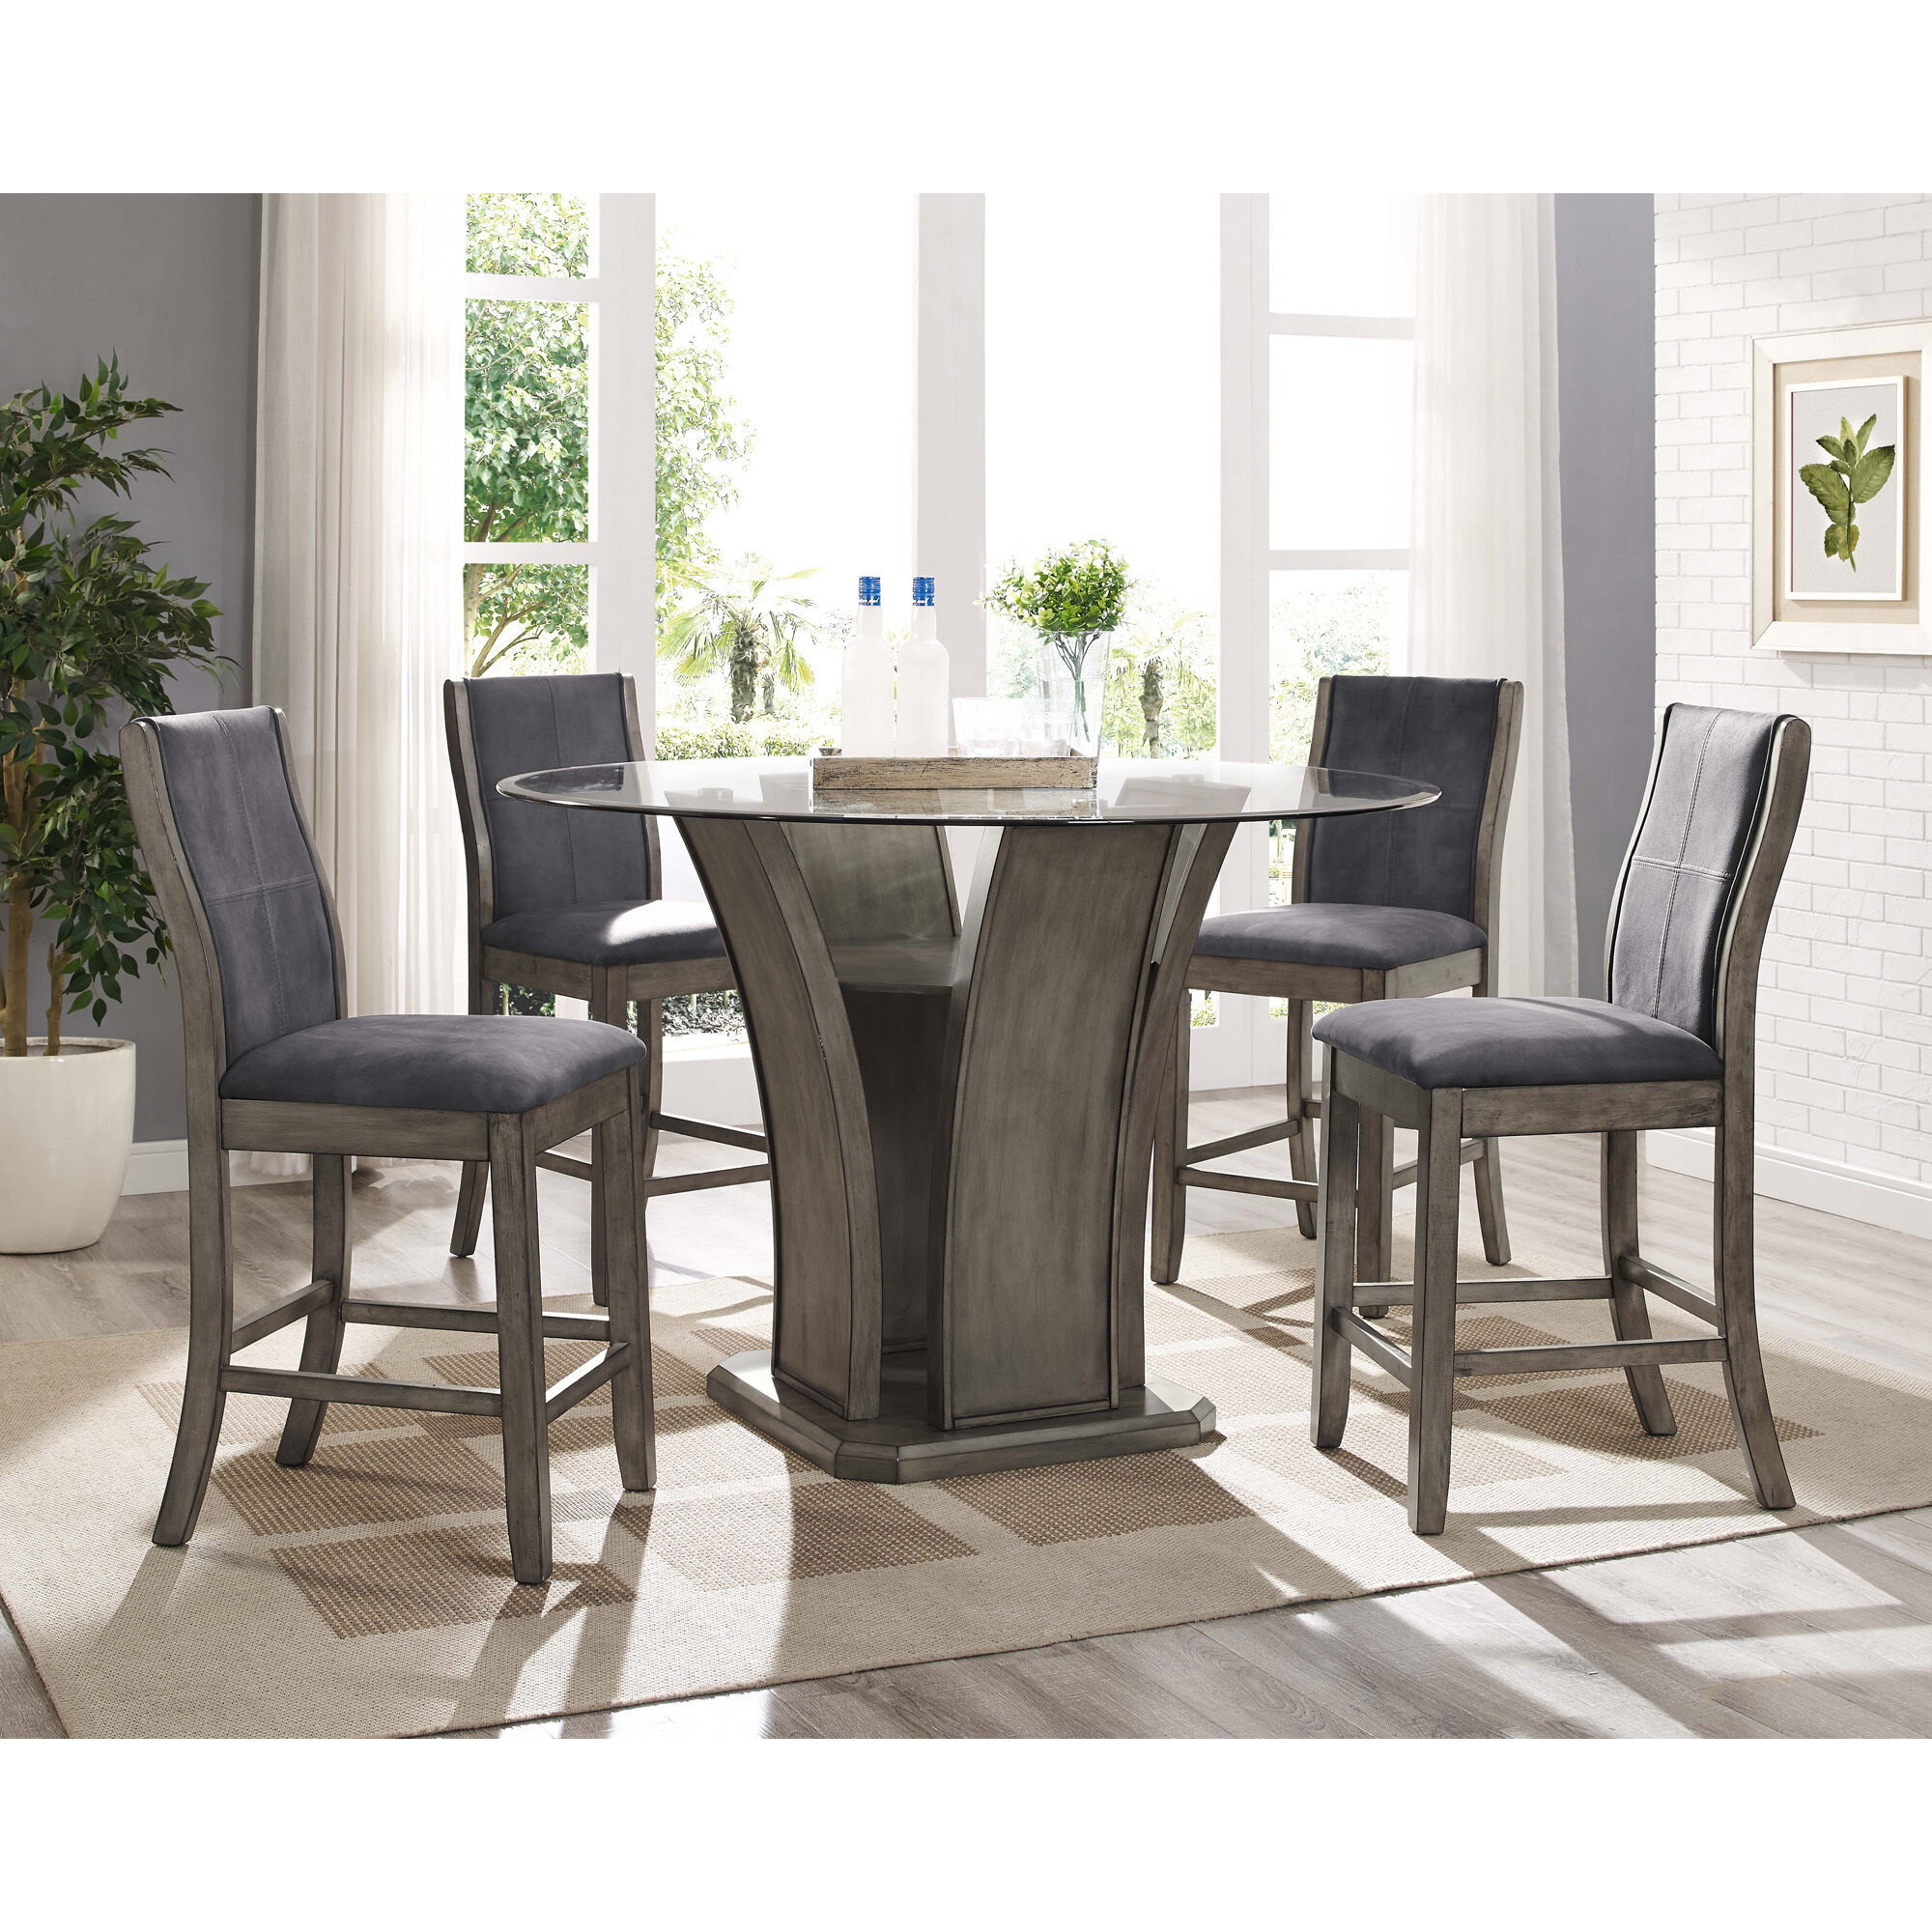 5 Piece Destin Dining Room Collection Rent to